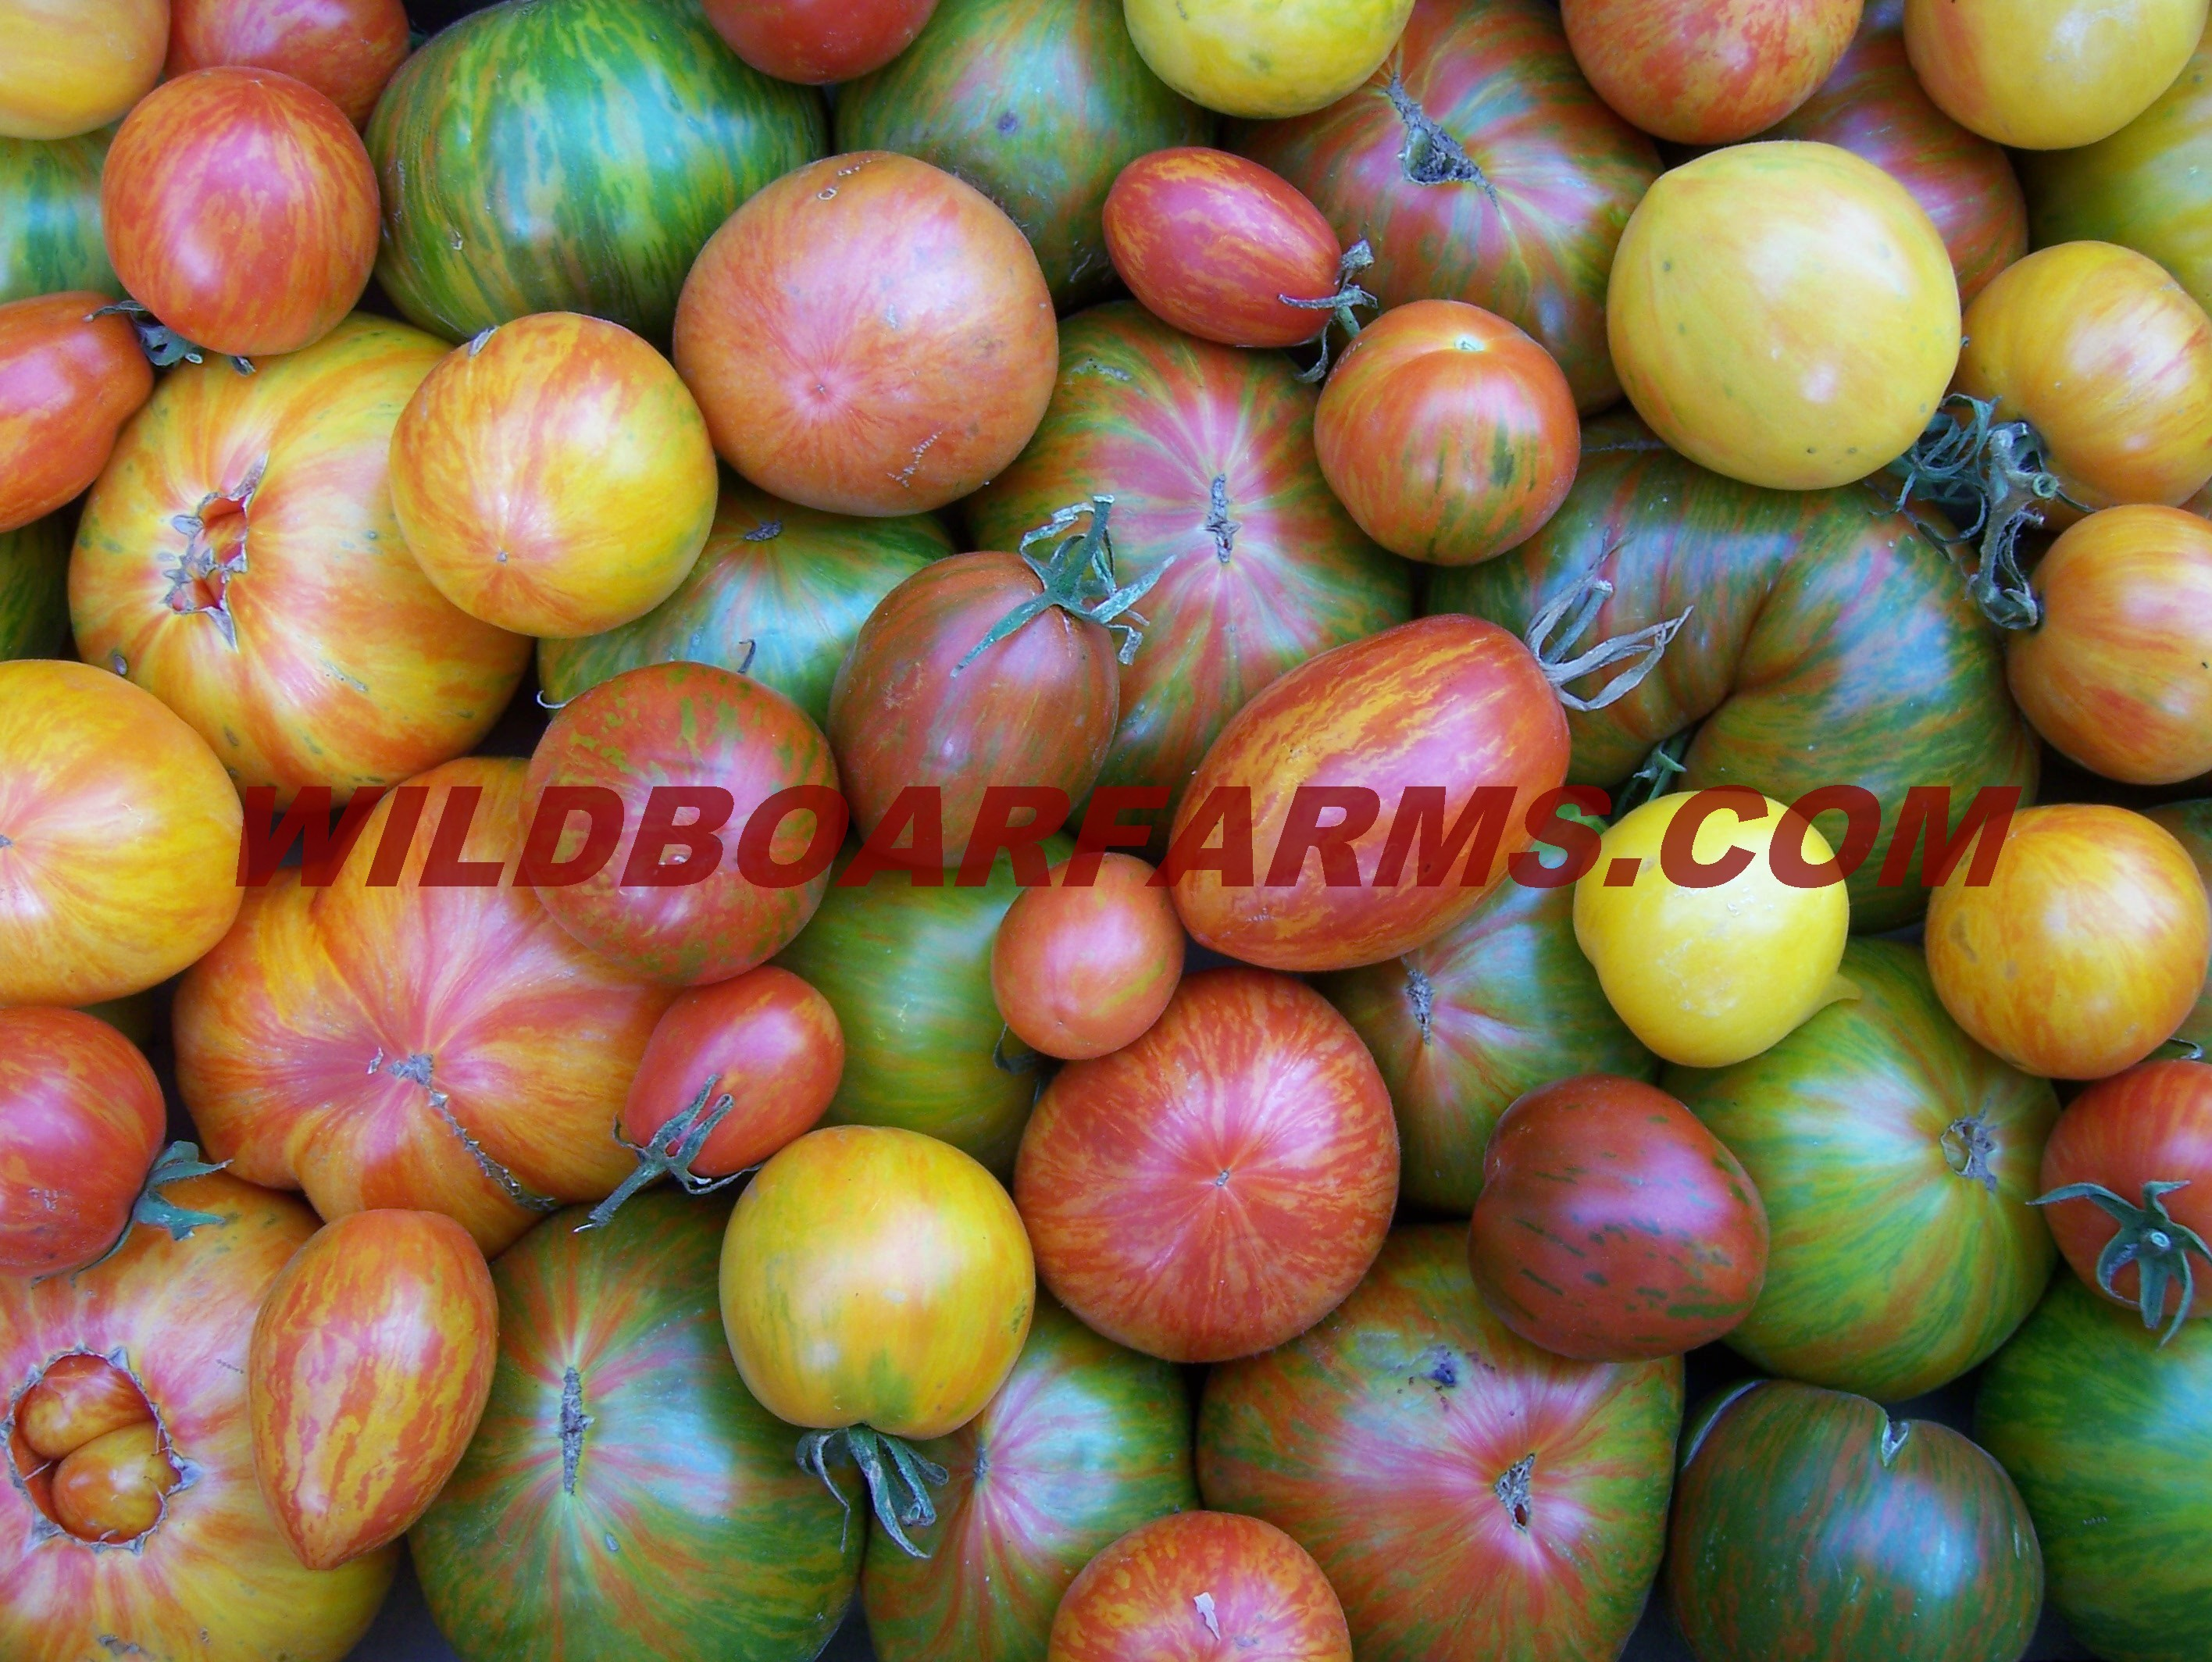 Wild Boar Farms Tomatoes 50